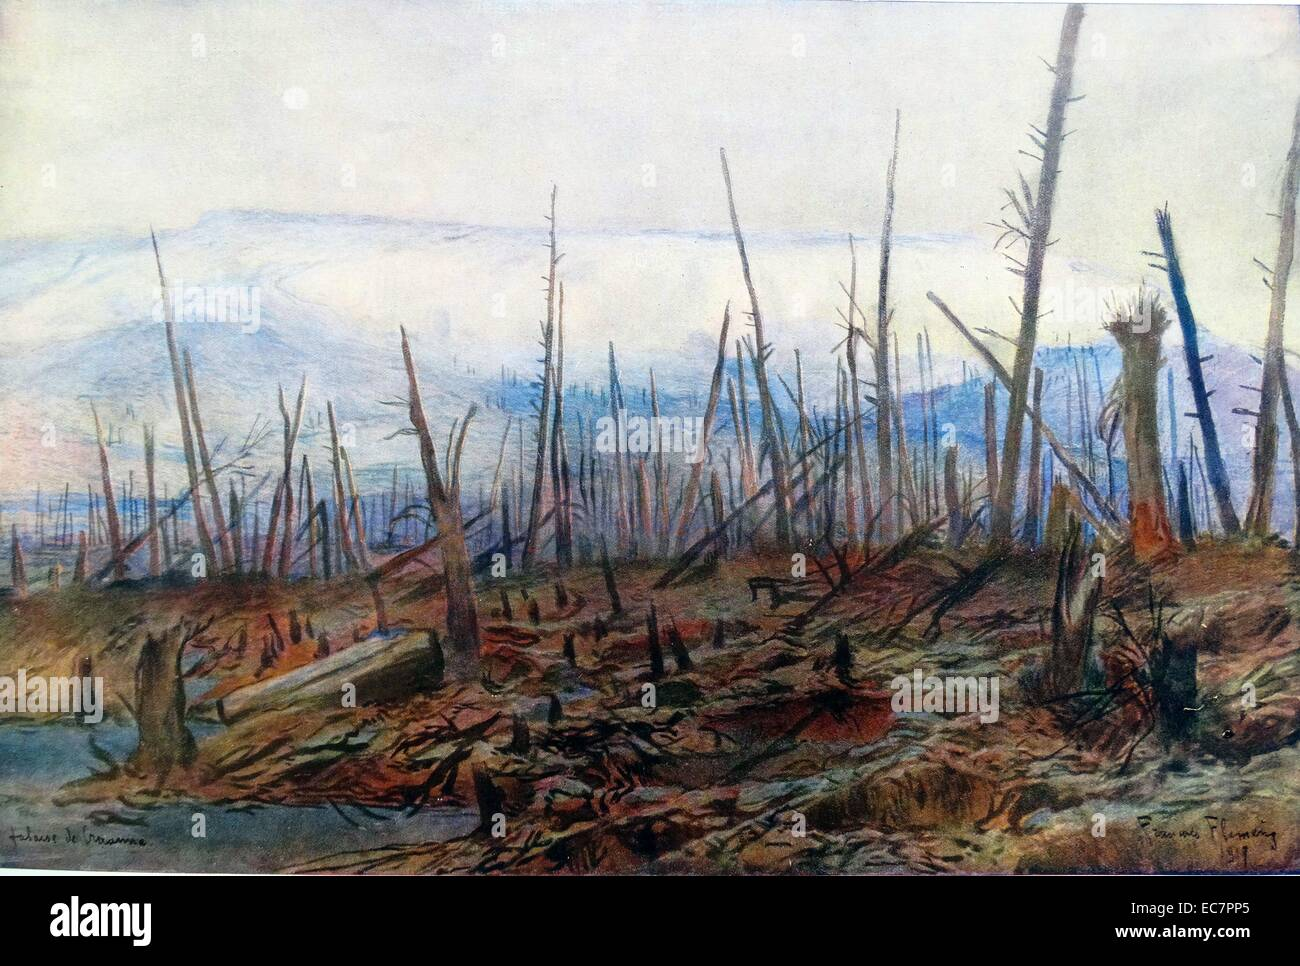 forest at Craonne, france destroyed during battles raging in World War One - Stock Image